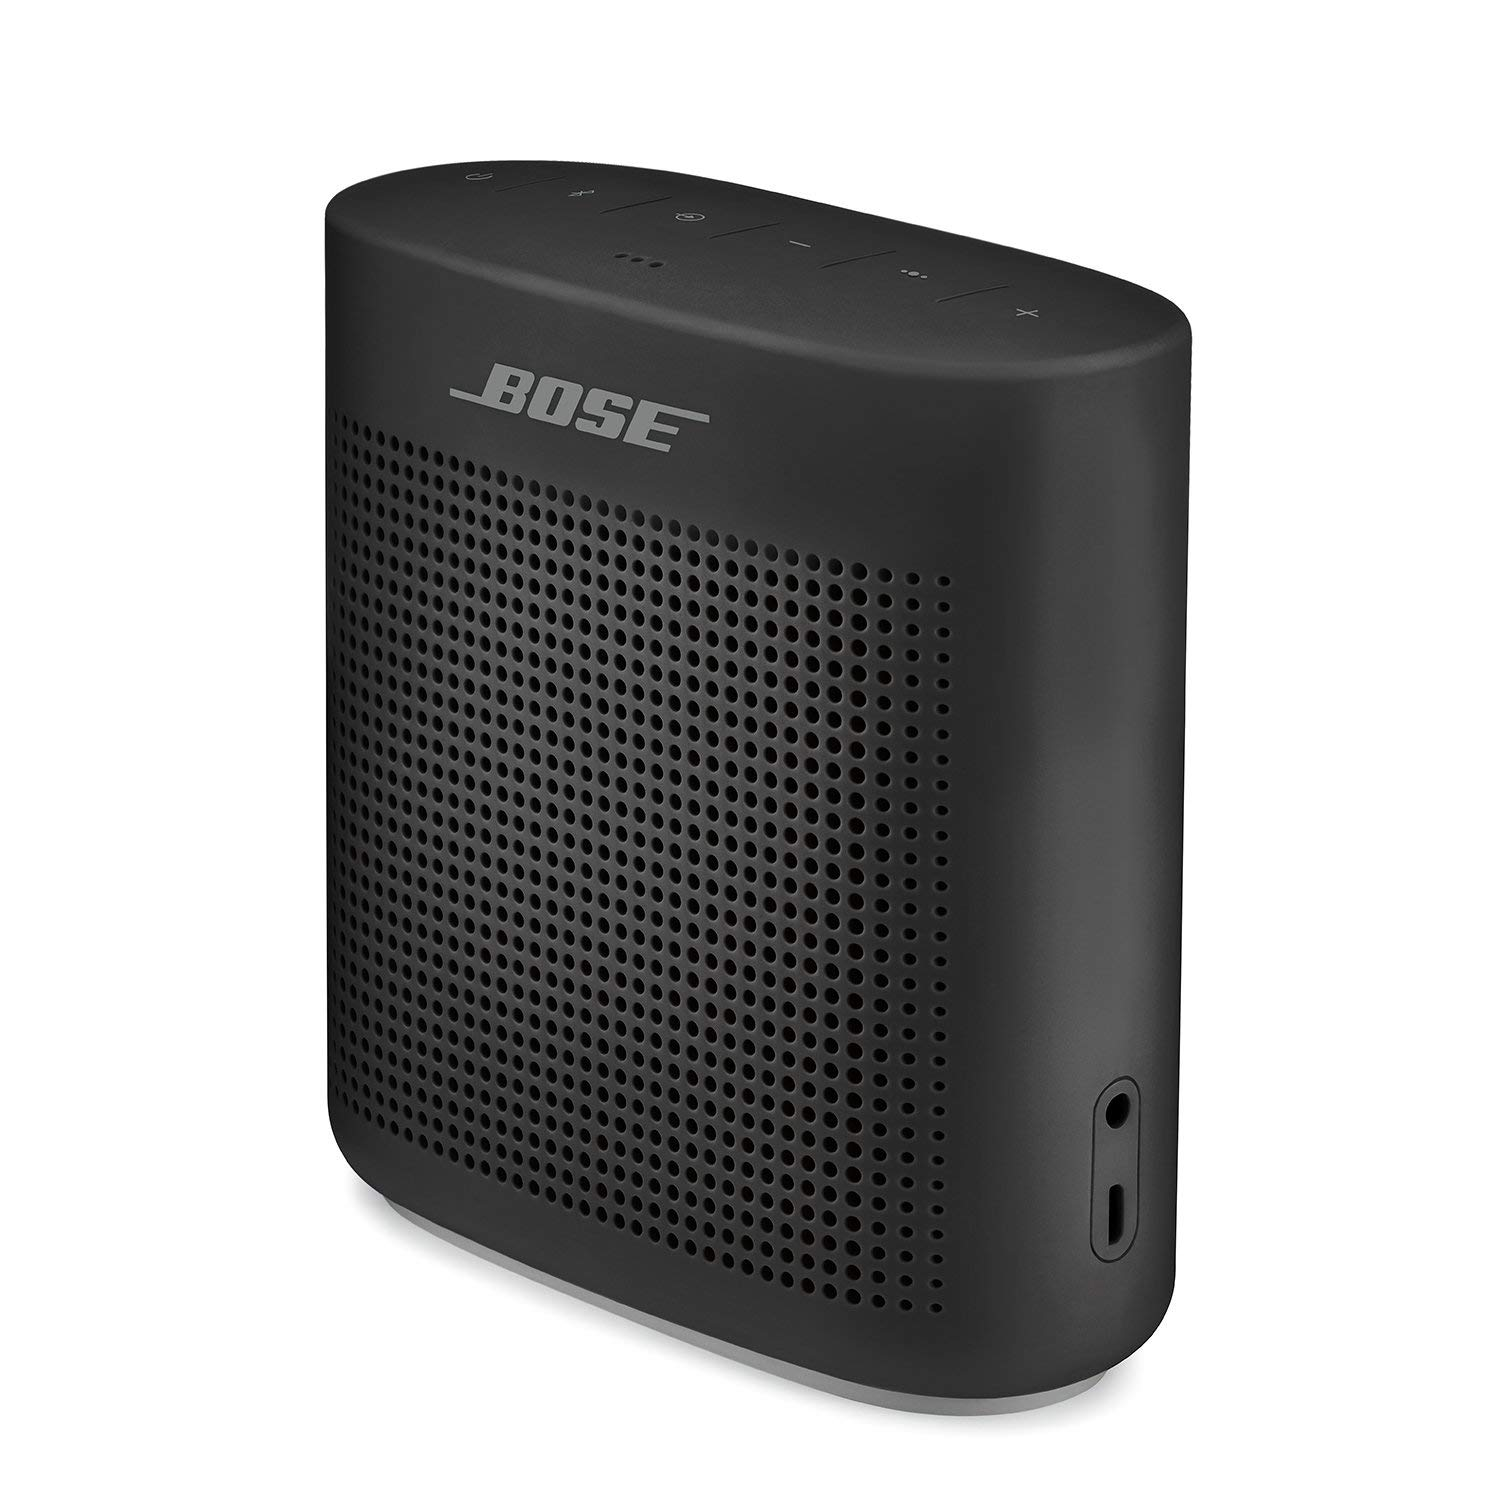 Bose SoundLink Colour-II speakers